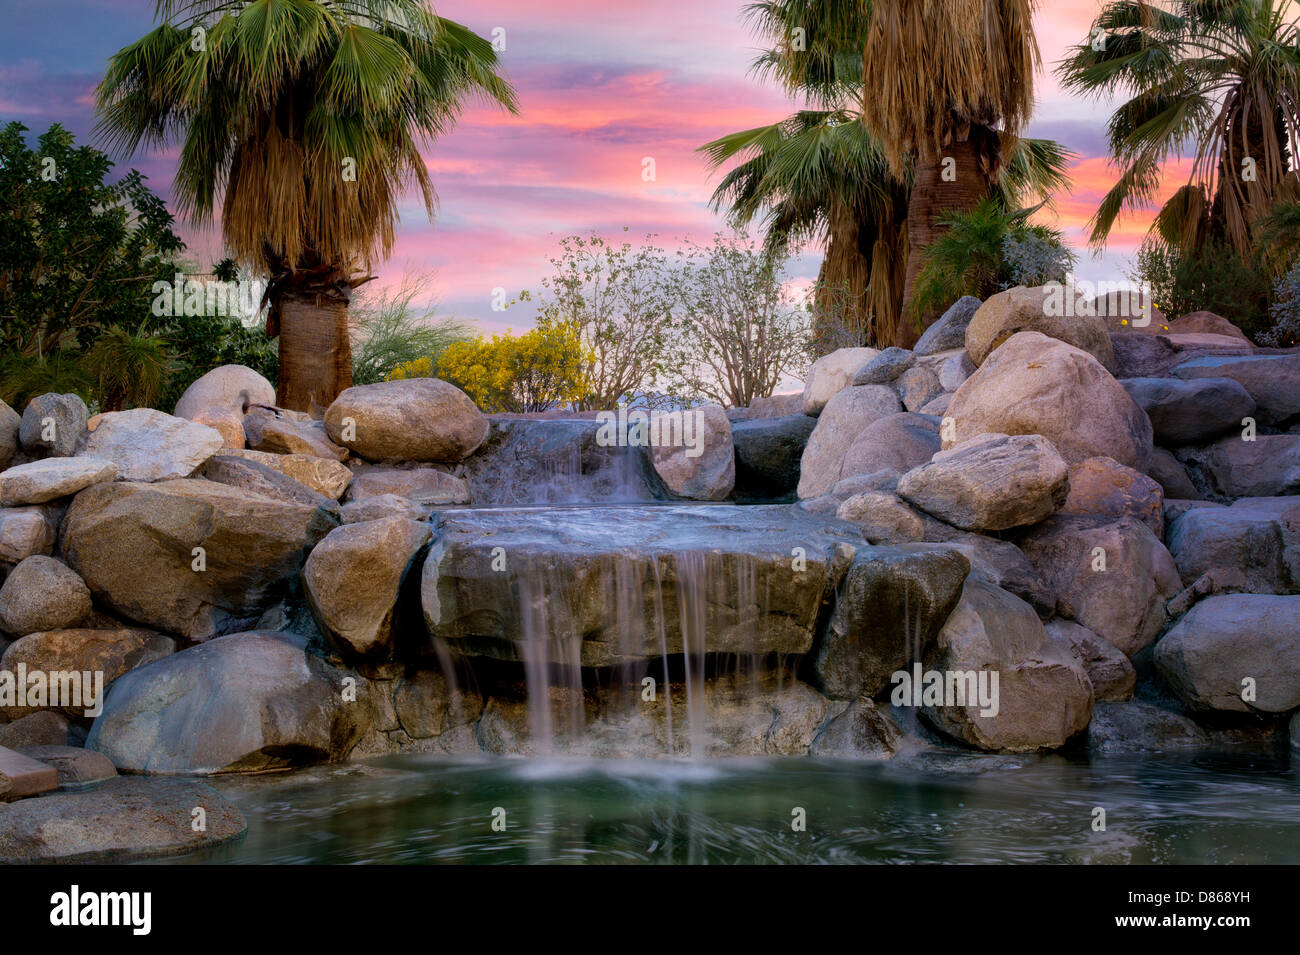 Waterfalls in Faye Sarkowsky Sculpture Garden. Palm Desert, California - Stock Image